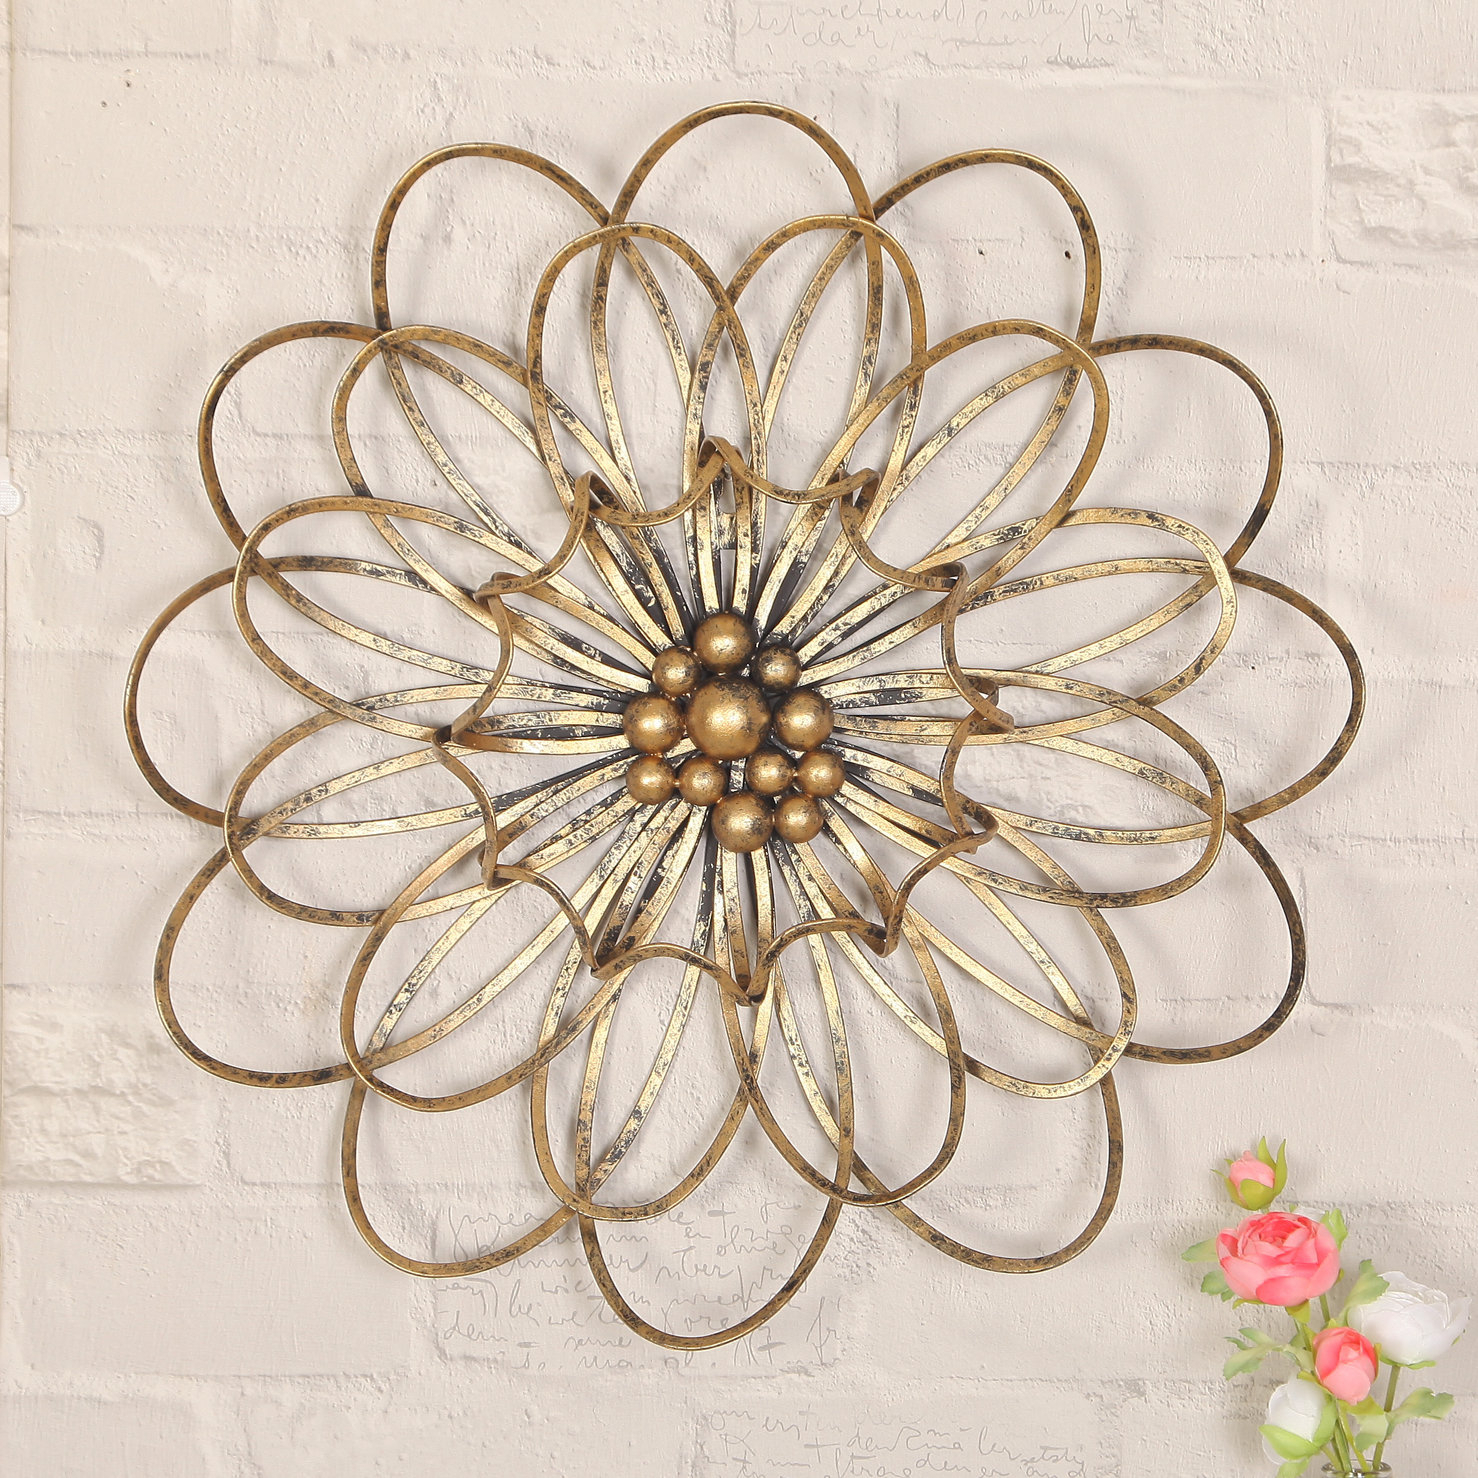 Flower Urban Design Metal Wall Décor for Flower Urban Design Metal Wall Decor (Image 14 of 30)